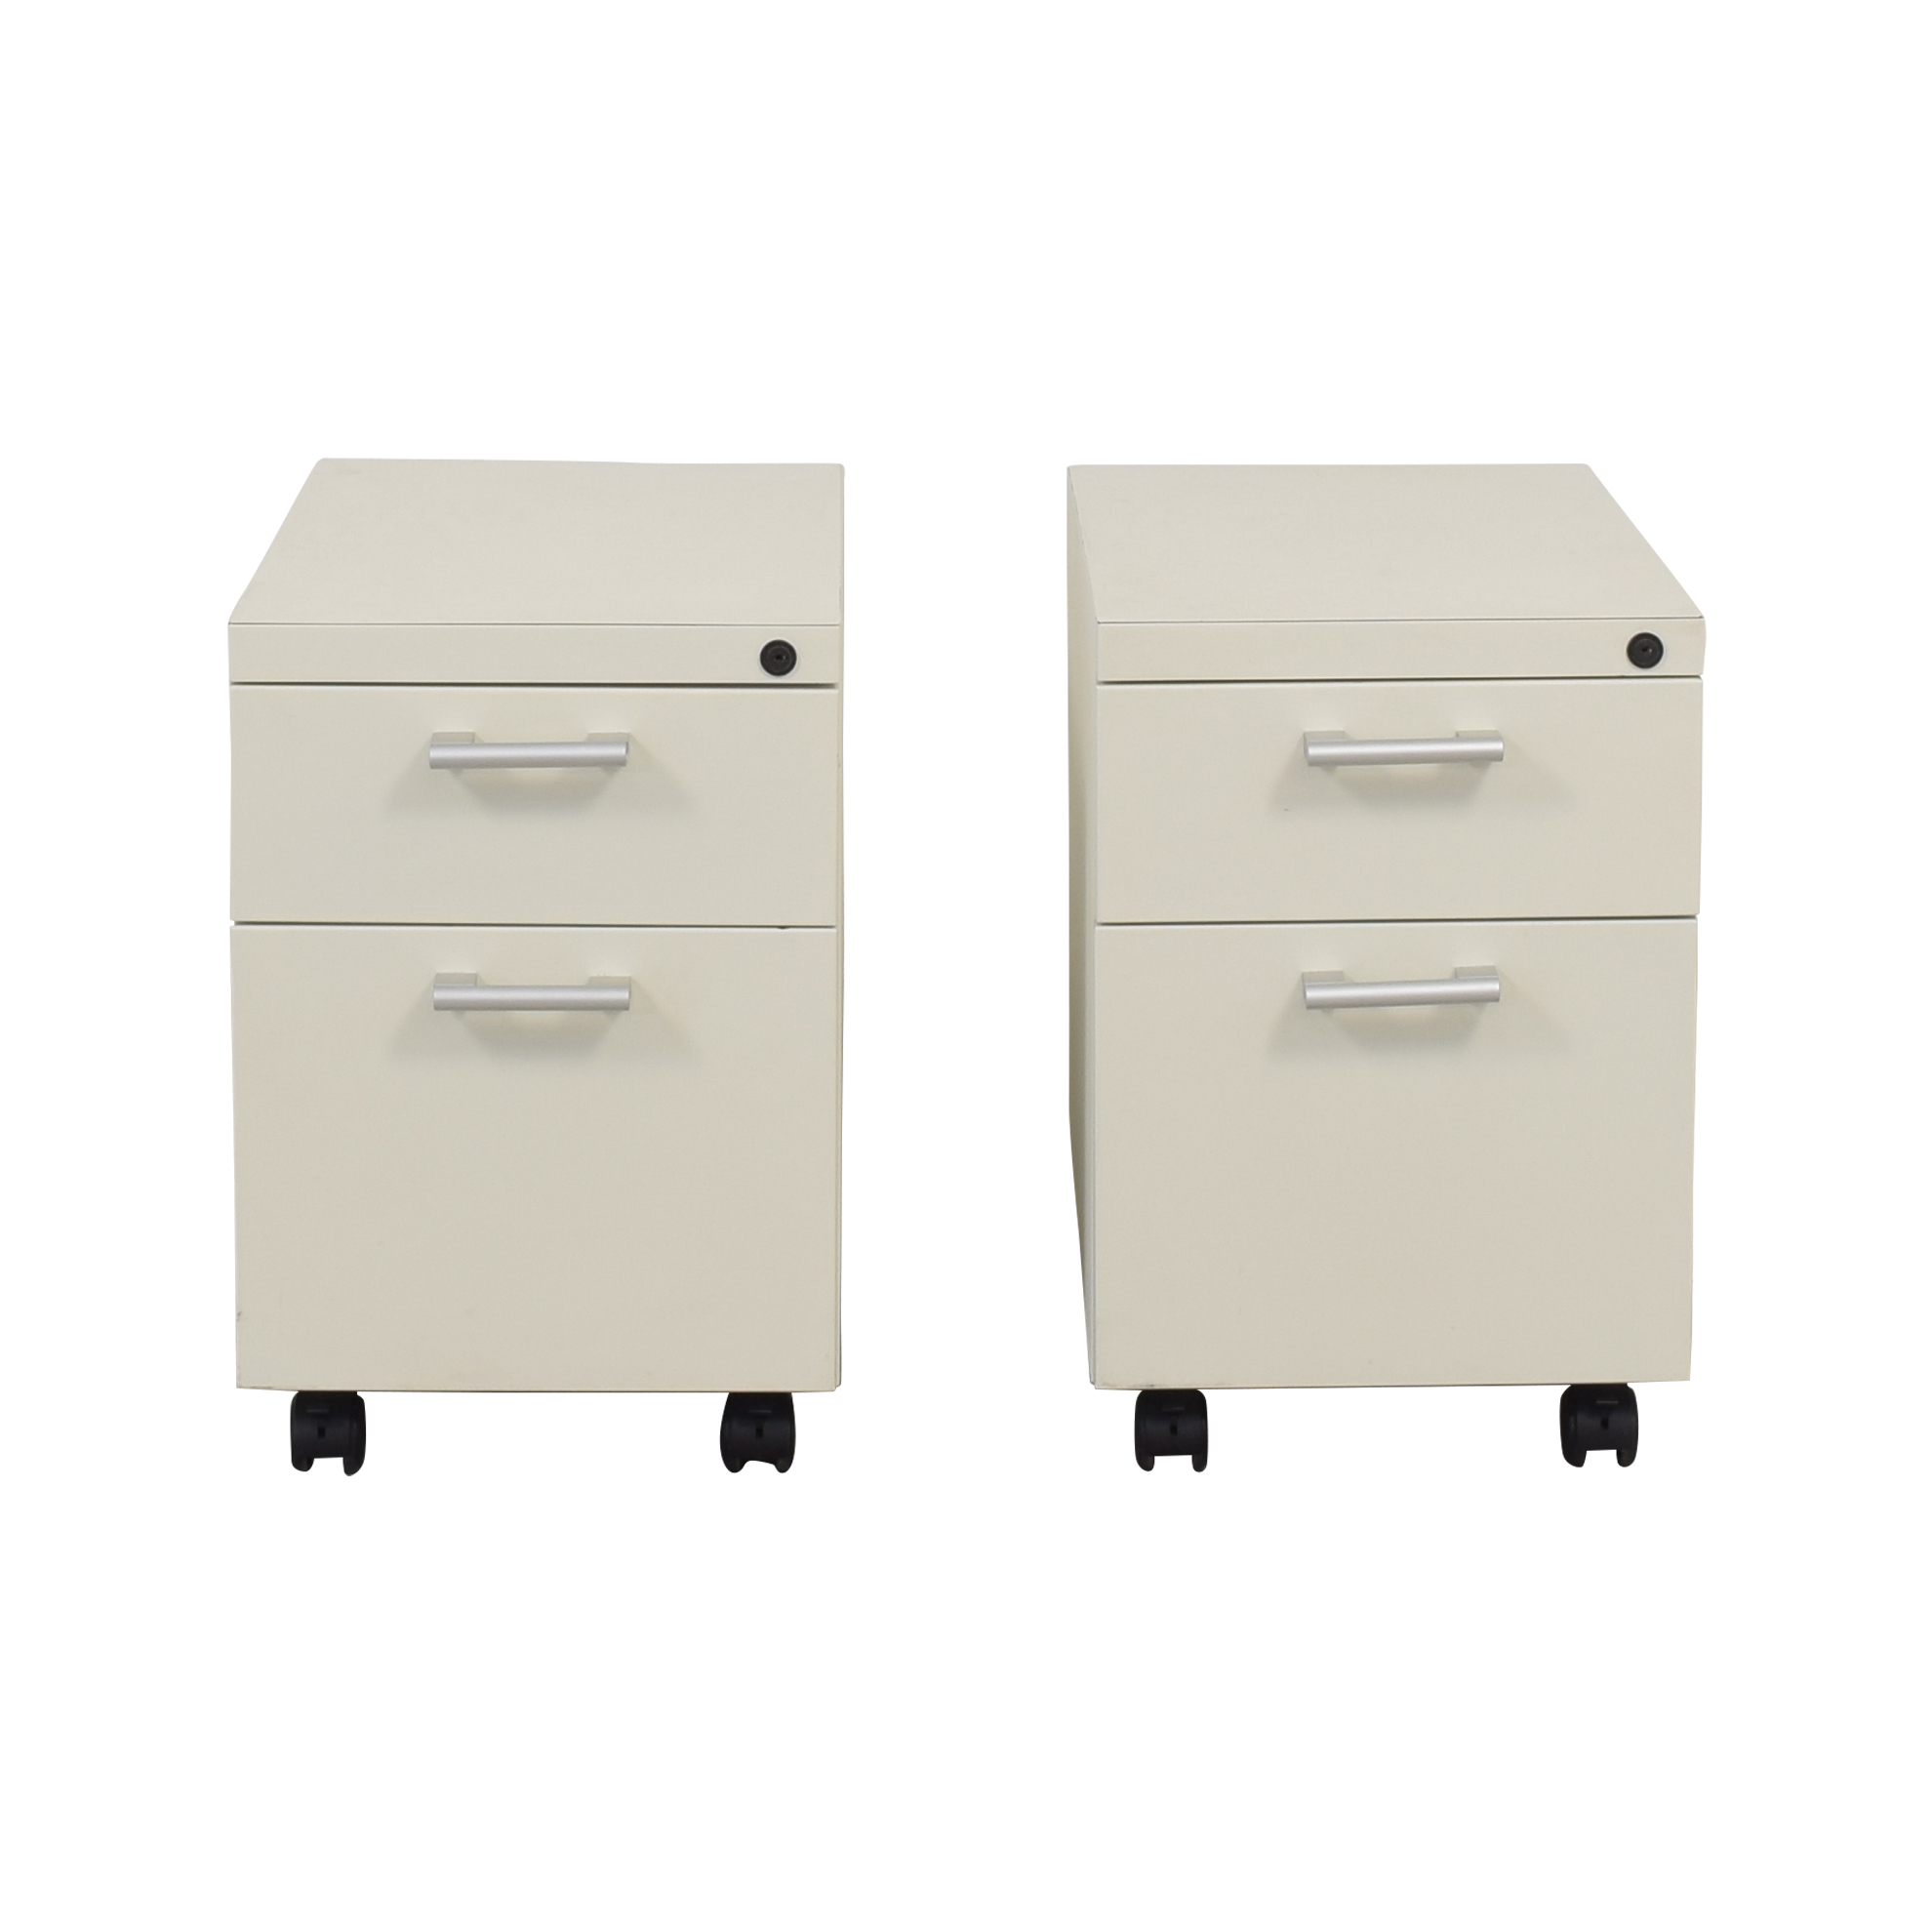 shop Office Depot Office Depot Rolling Filing Cabinets online